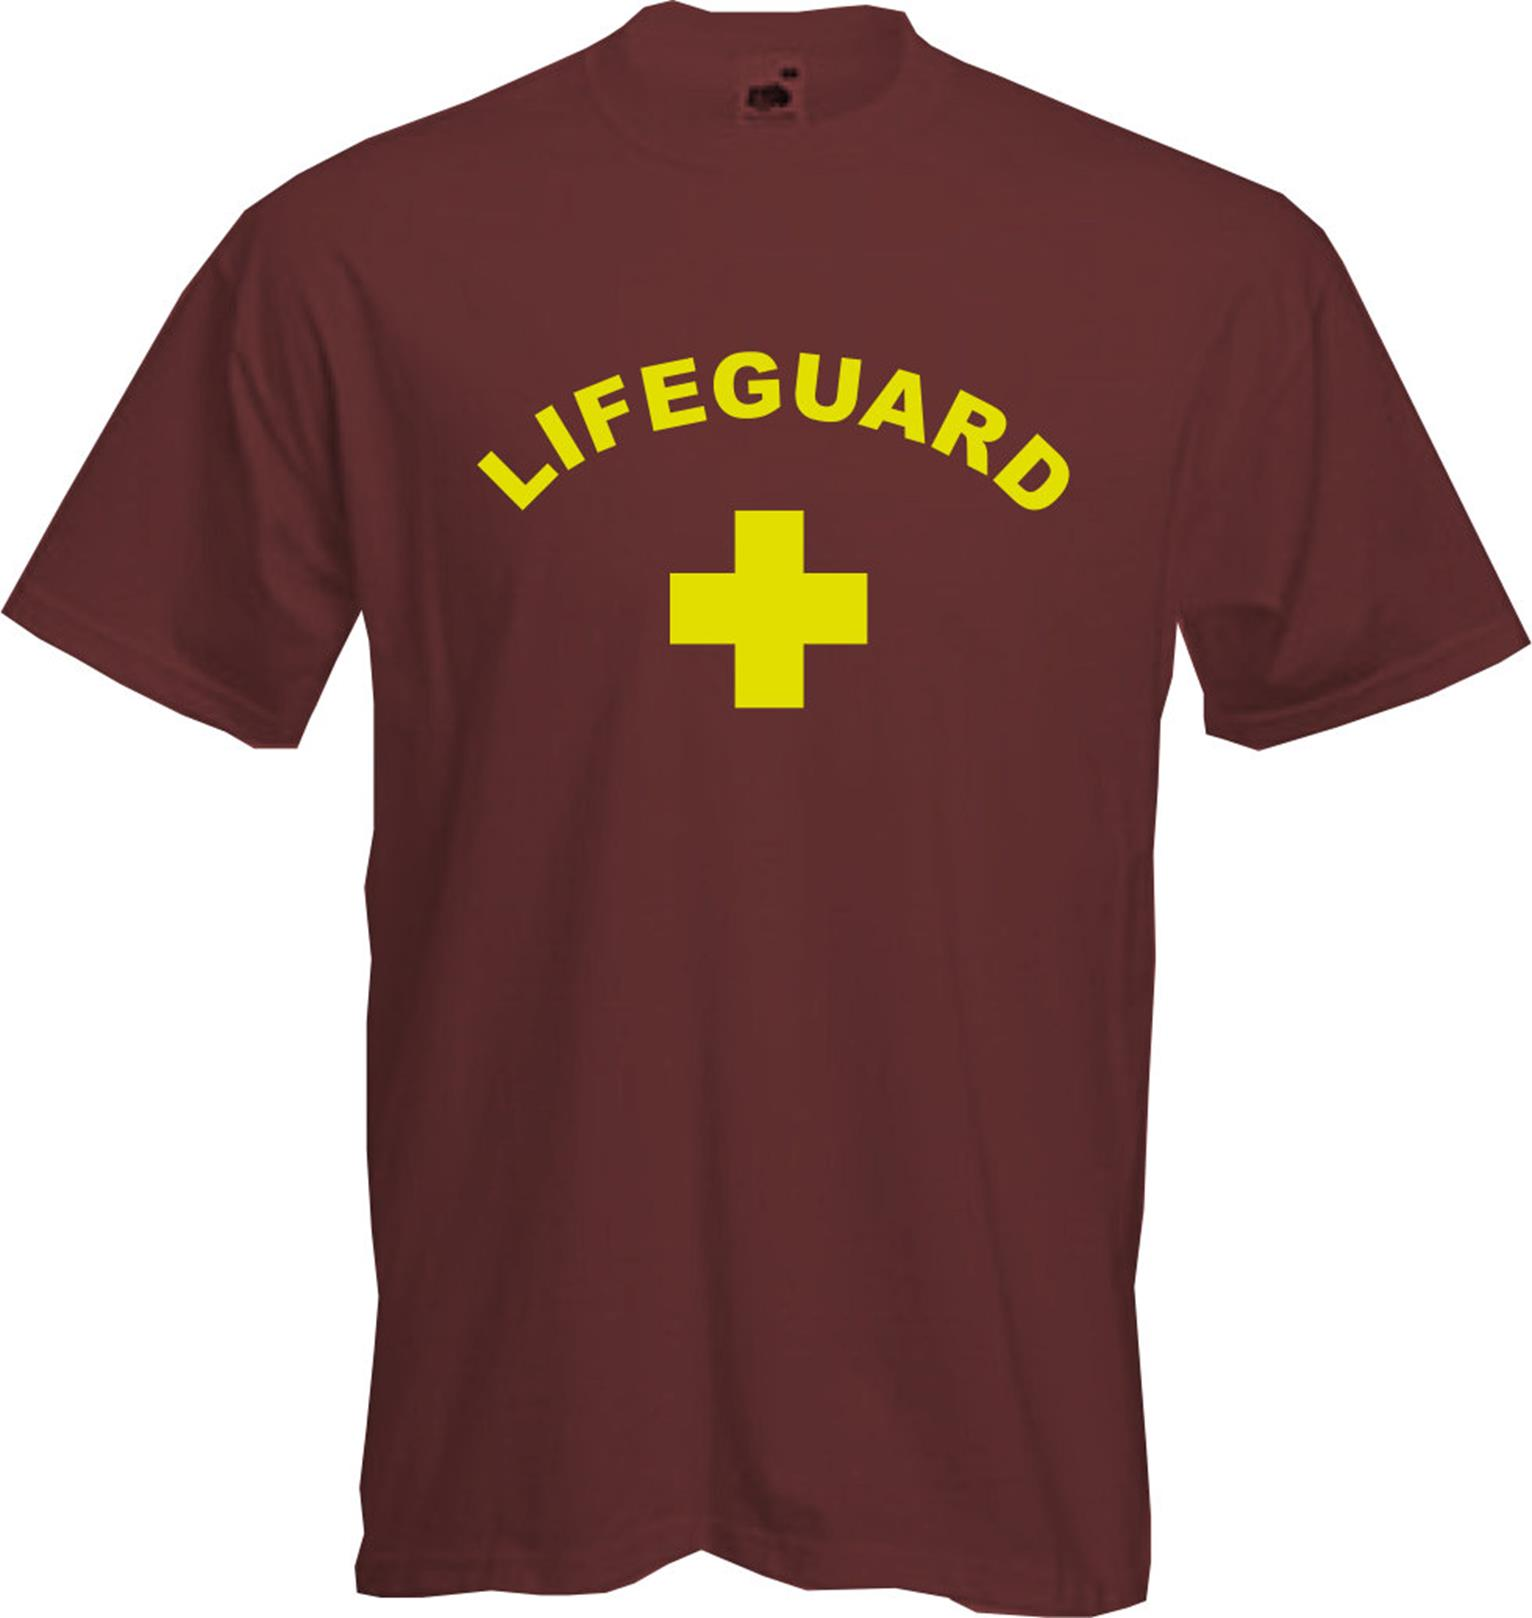 LIFEGUARD - T Shirt, SWIMMING, Fancy Dress, Baywatch, Fun, Cool ...